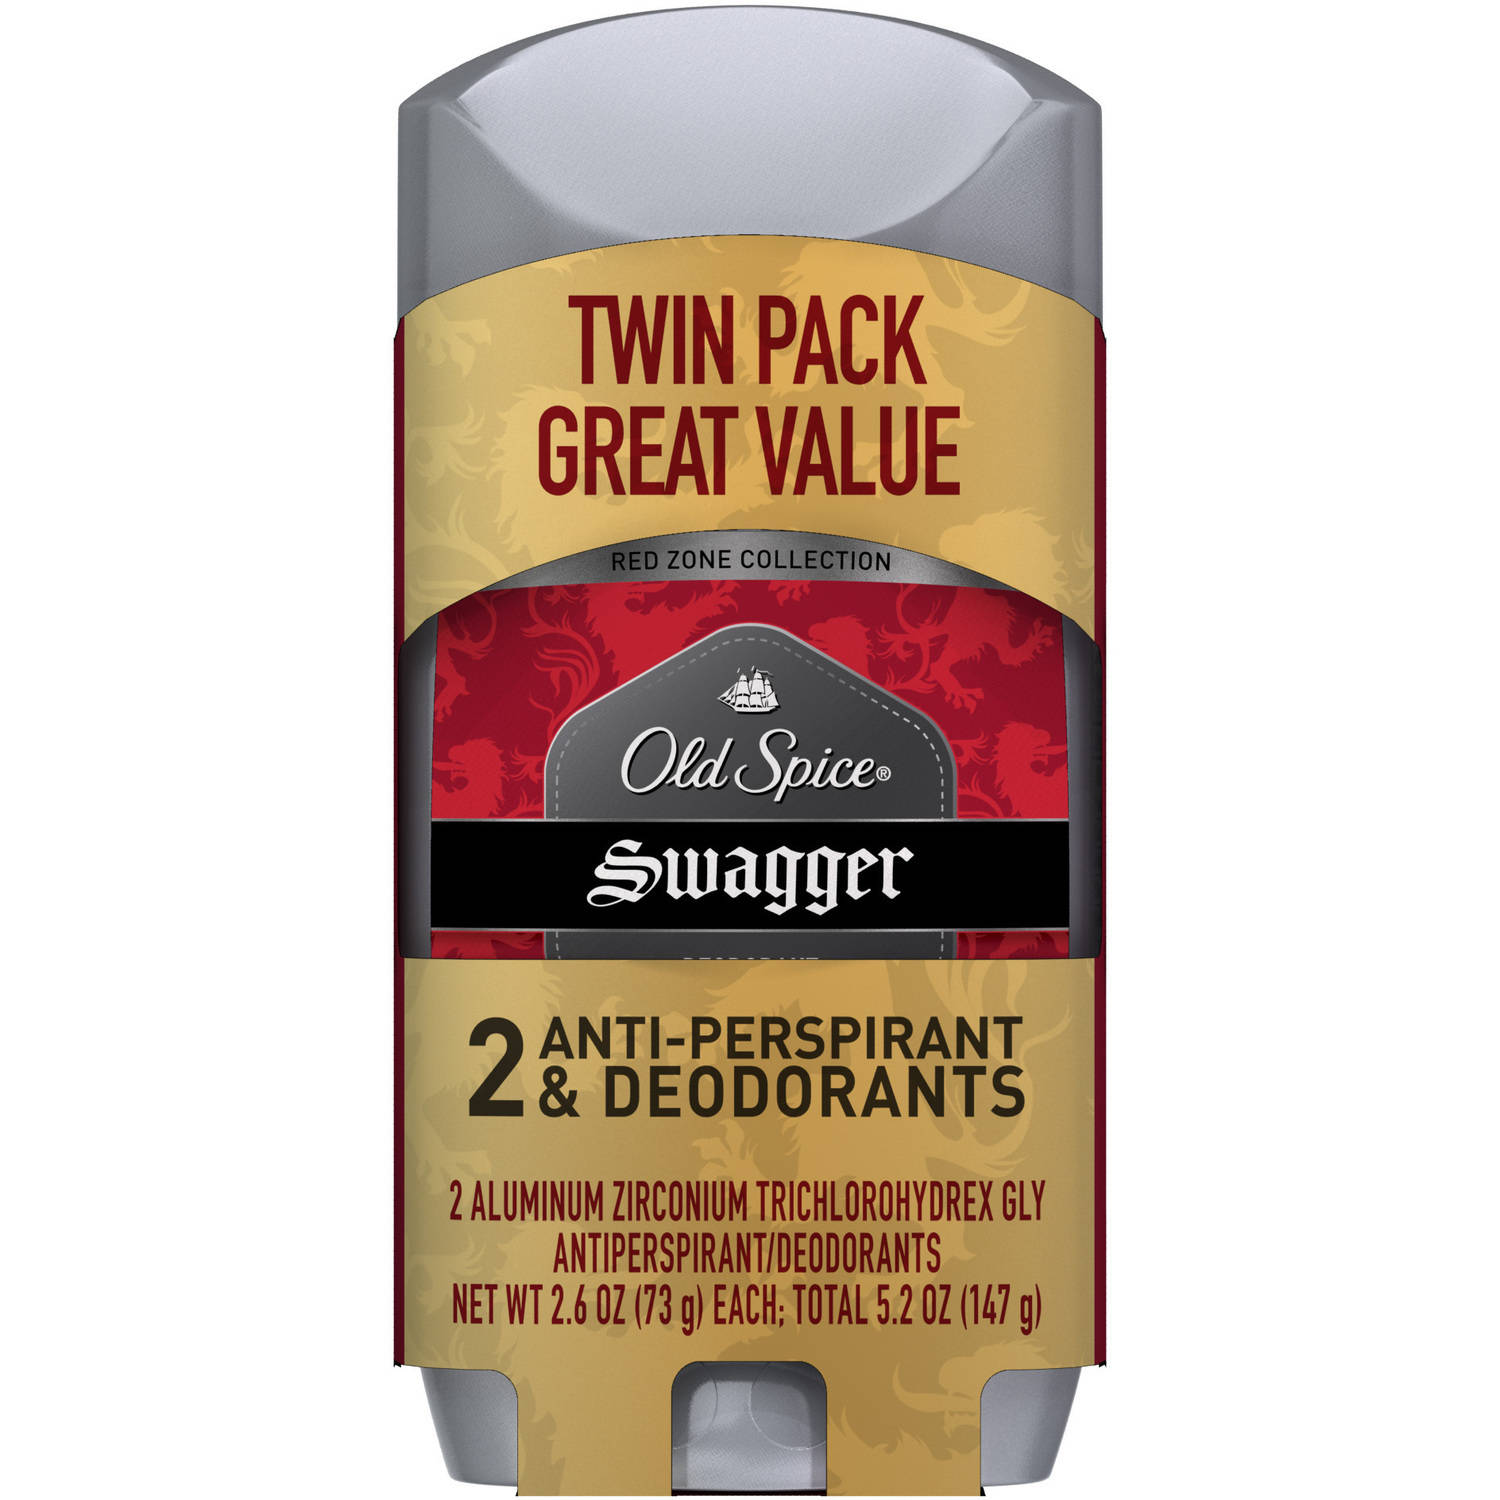 Old Spice Red Zone Collection Swagger Invisible Solid Antiperspirant/Deodorant, 2.6 oz (Pack of 2)